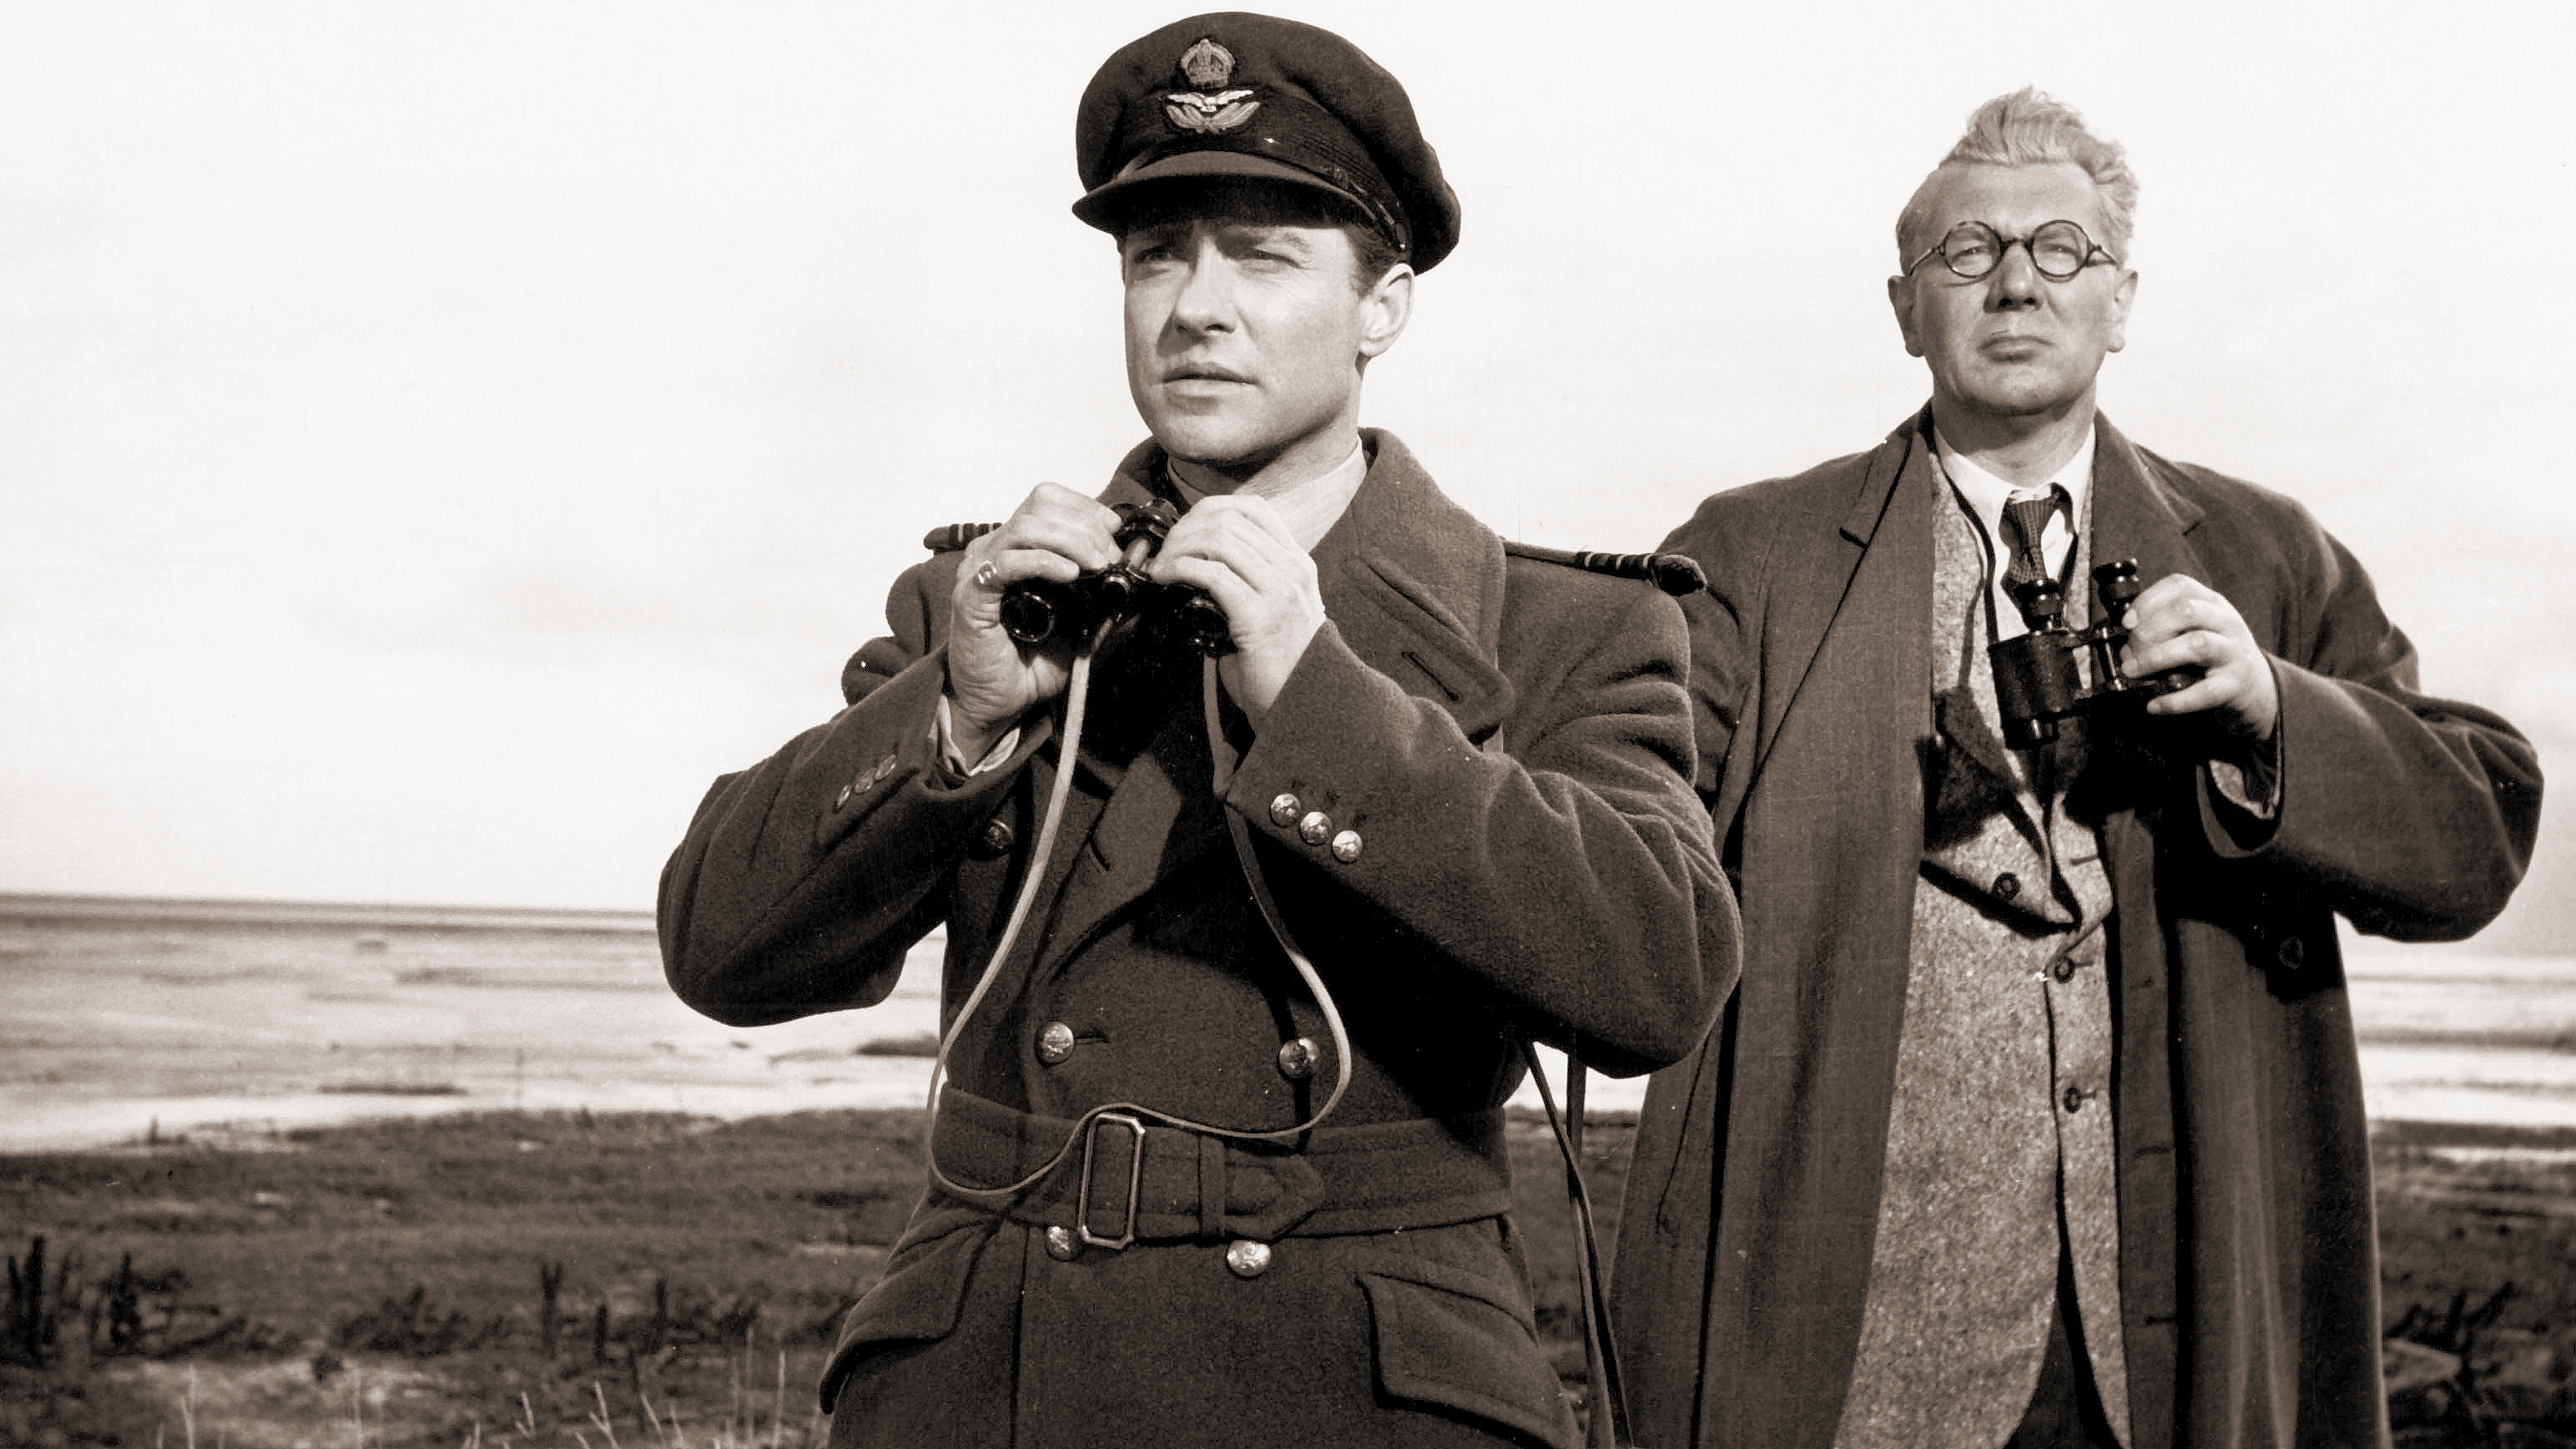 Guy Gibson (Richard Todd) and Barnes Wallis (Michael Redgrave) look out with their field glasses in The Dam Busters (1955)